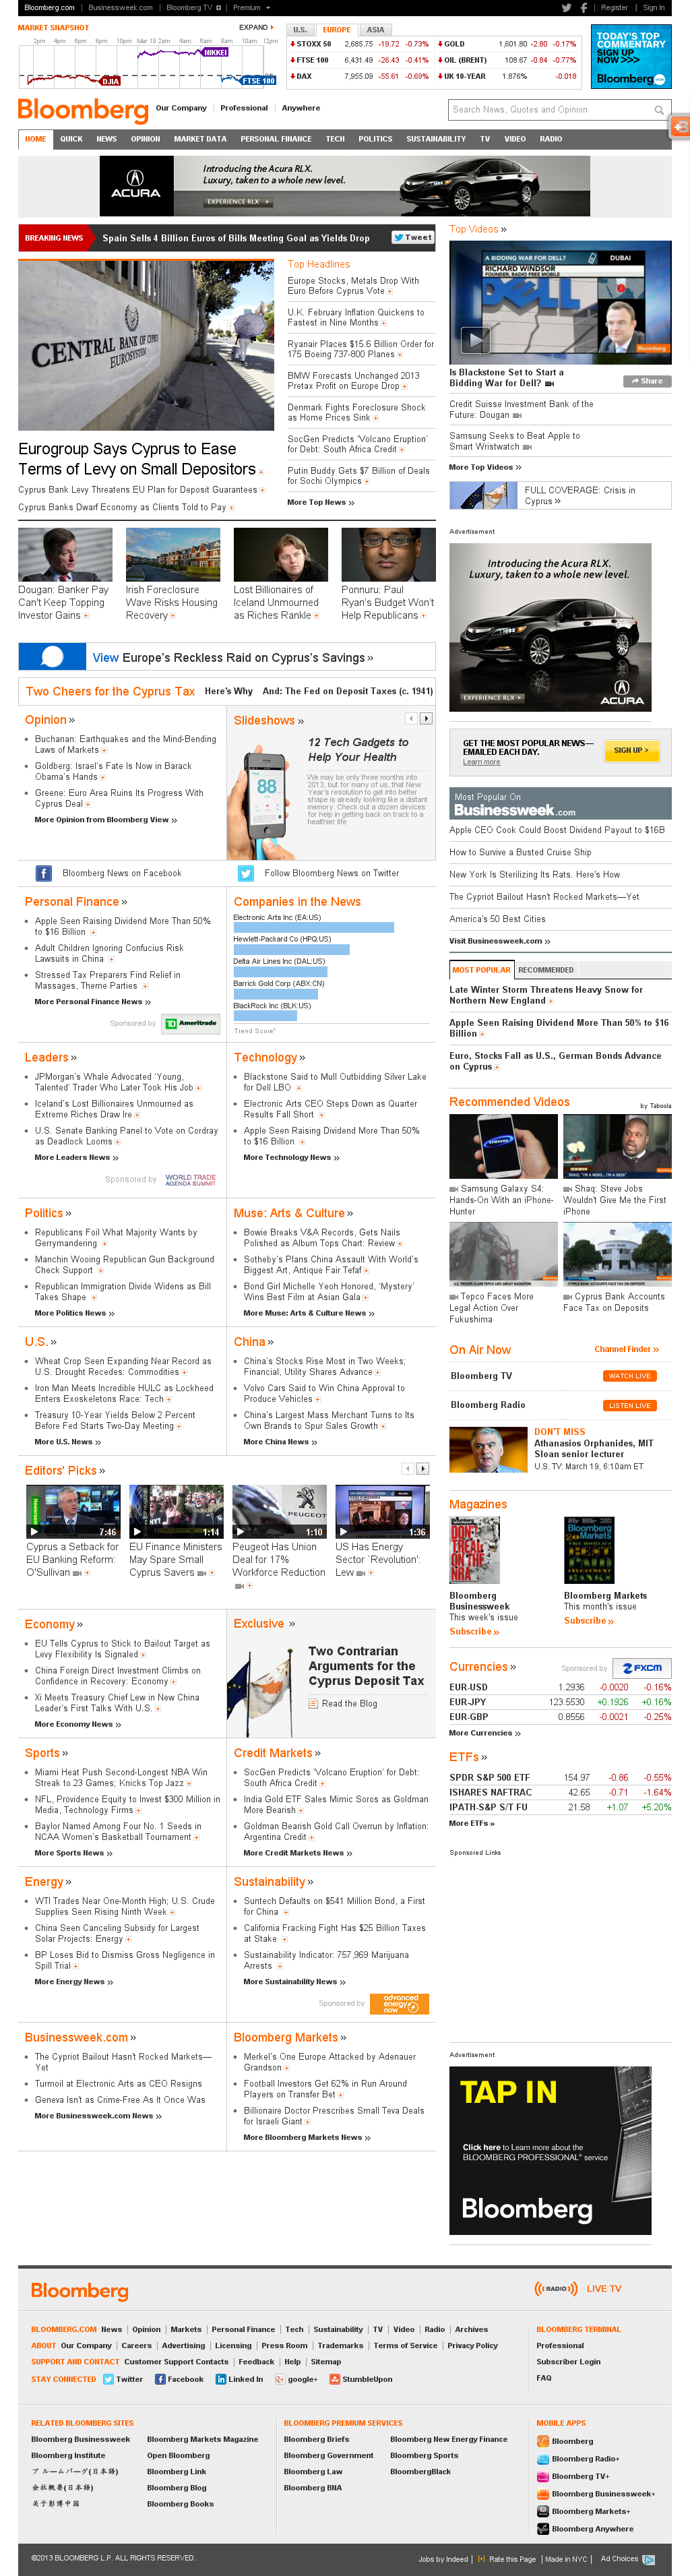 Bloomberg at Tuesday March 19, 2013, 10:02 a.m. UTC